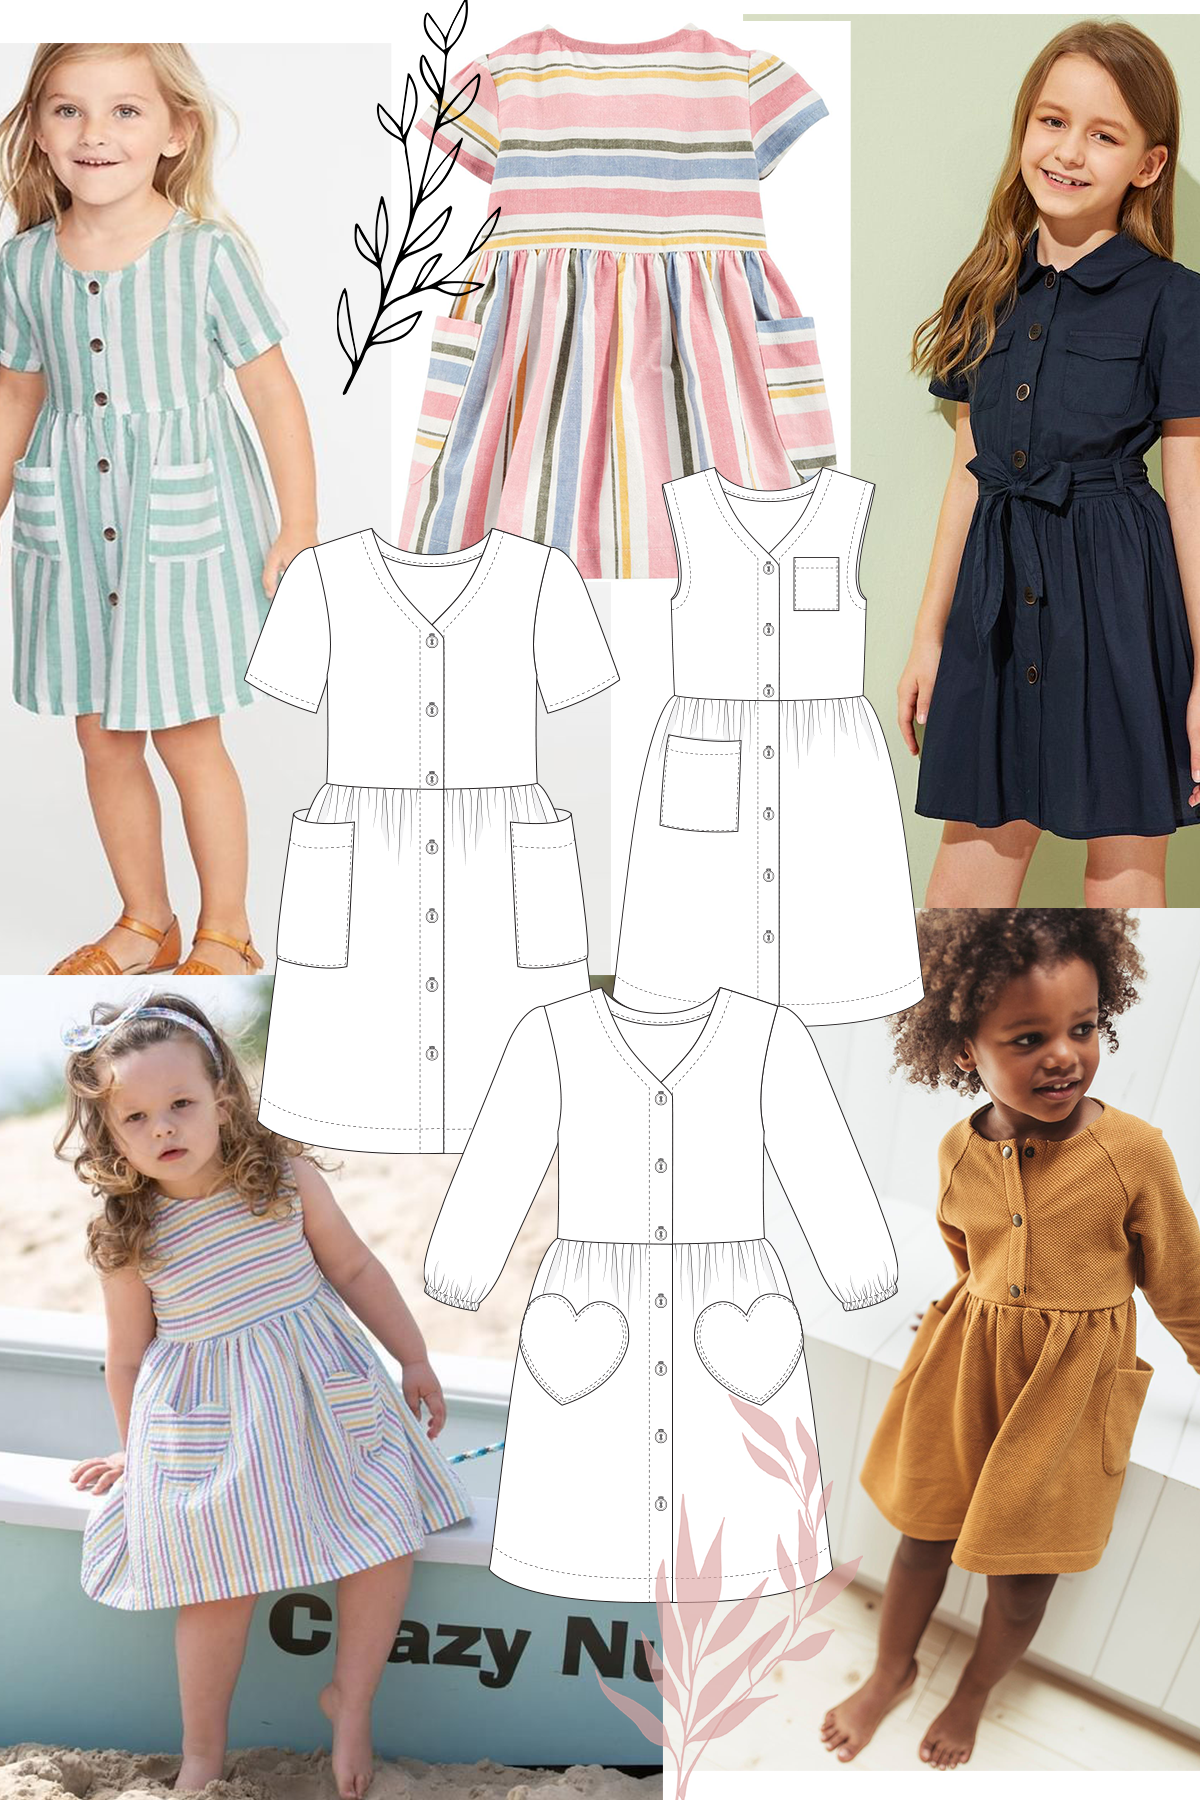 Add some beautiful patch pockets in all shapes to your Mini Darling Ranges dress.